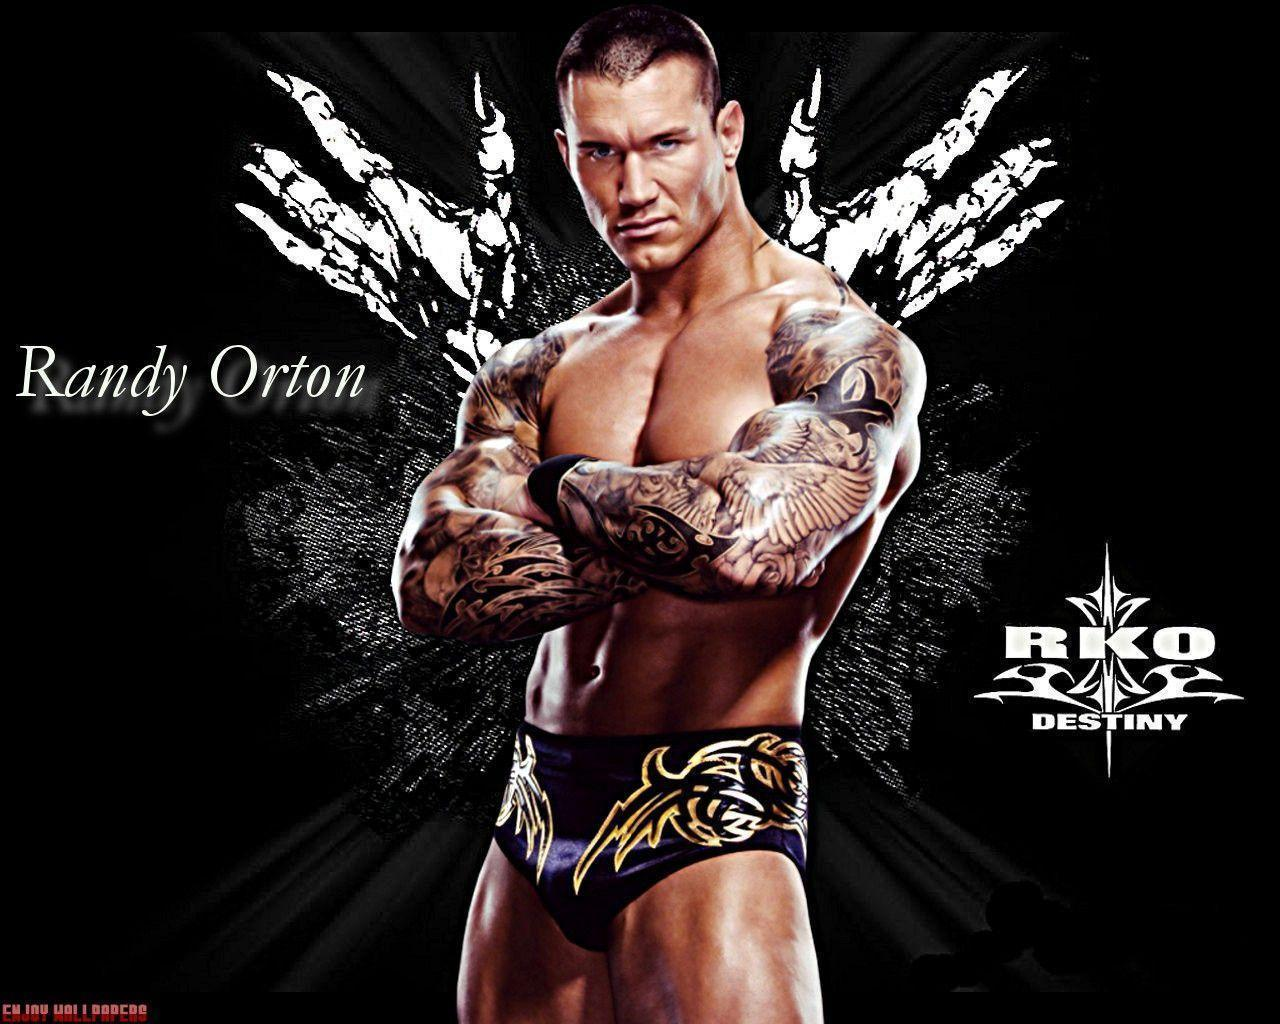 Randy orton, Wallpapers and Hd wallpaper on Pinterest